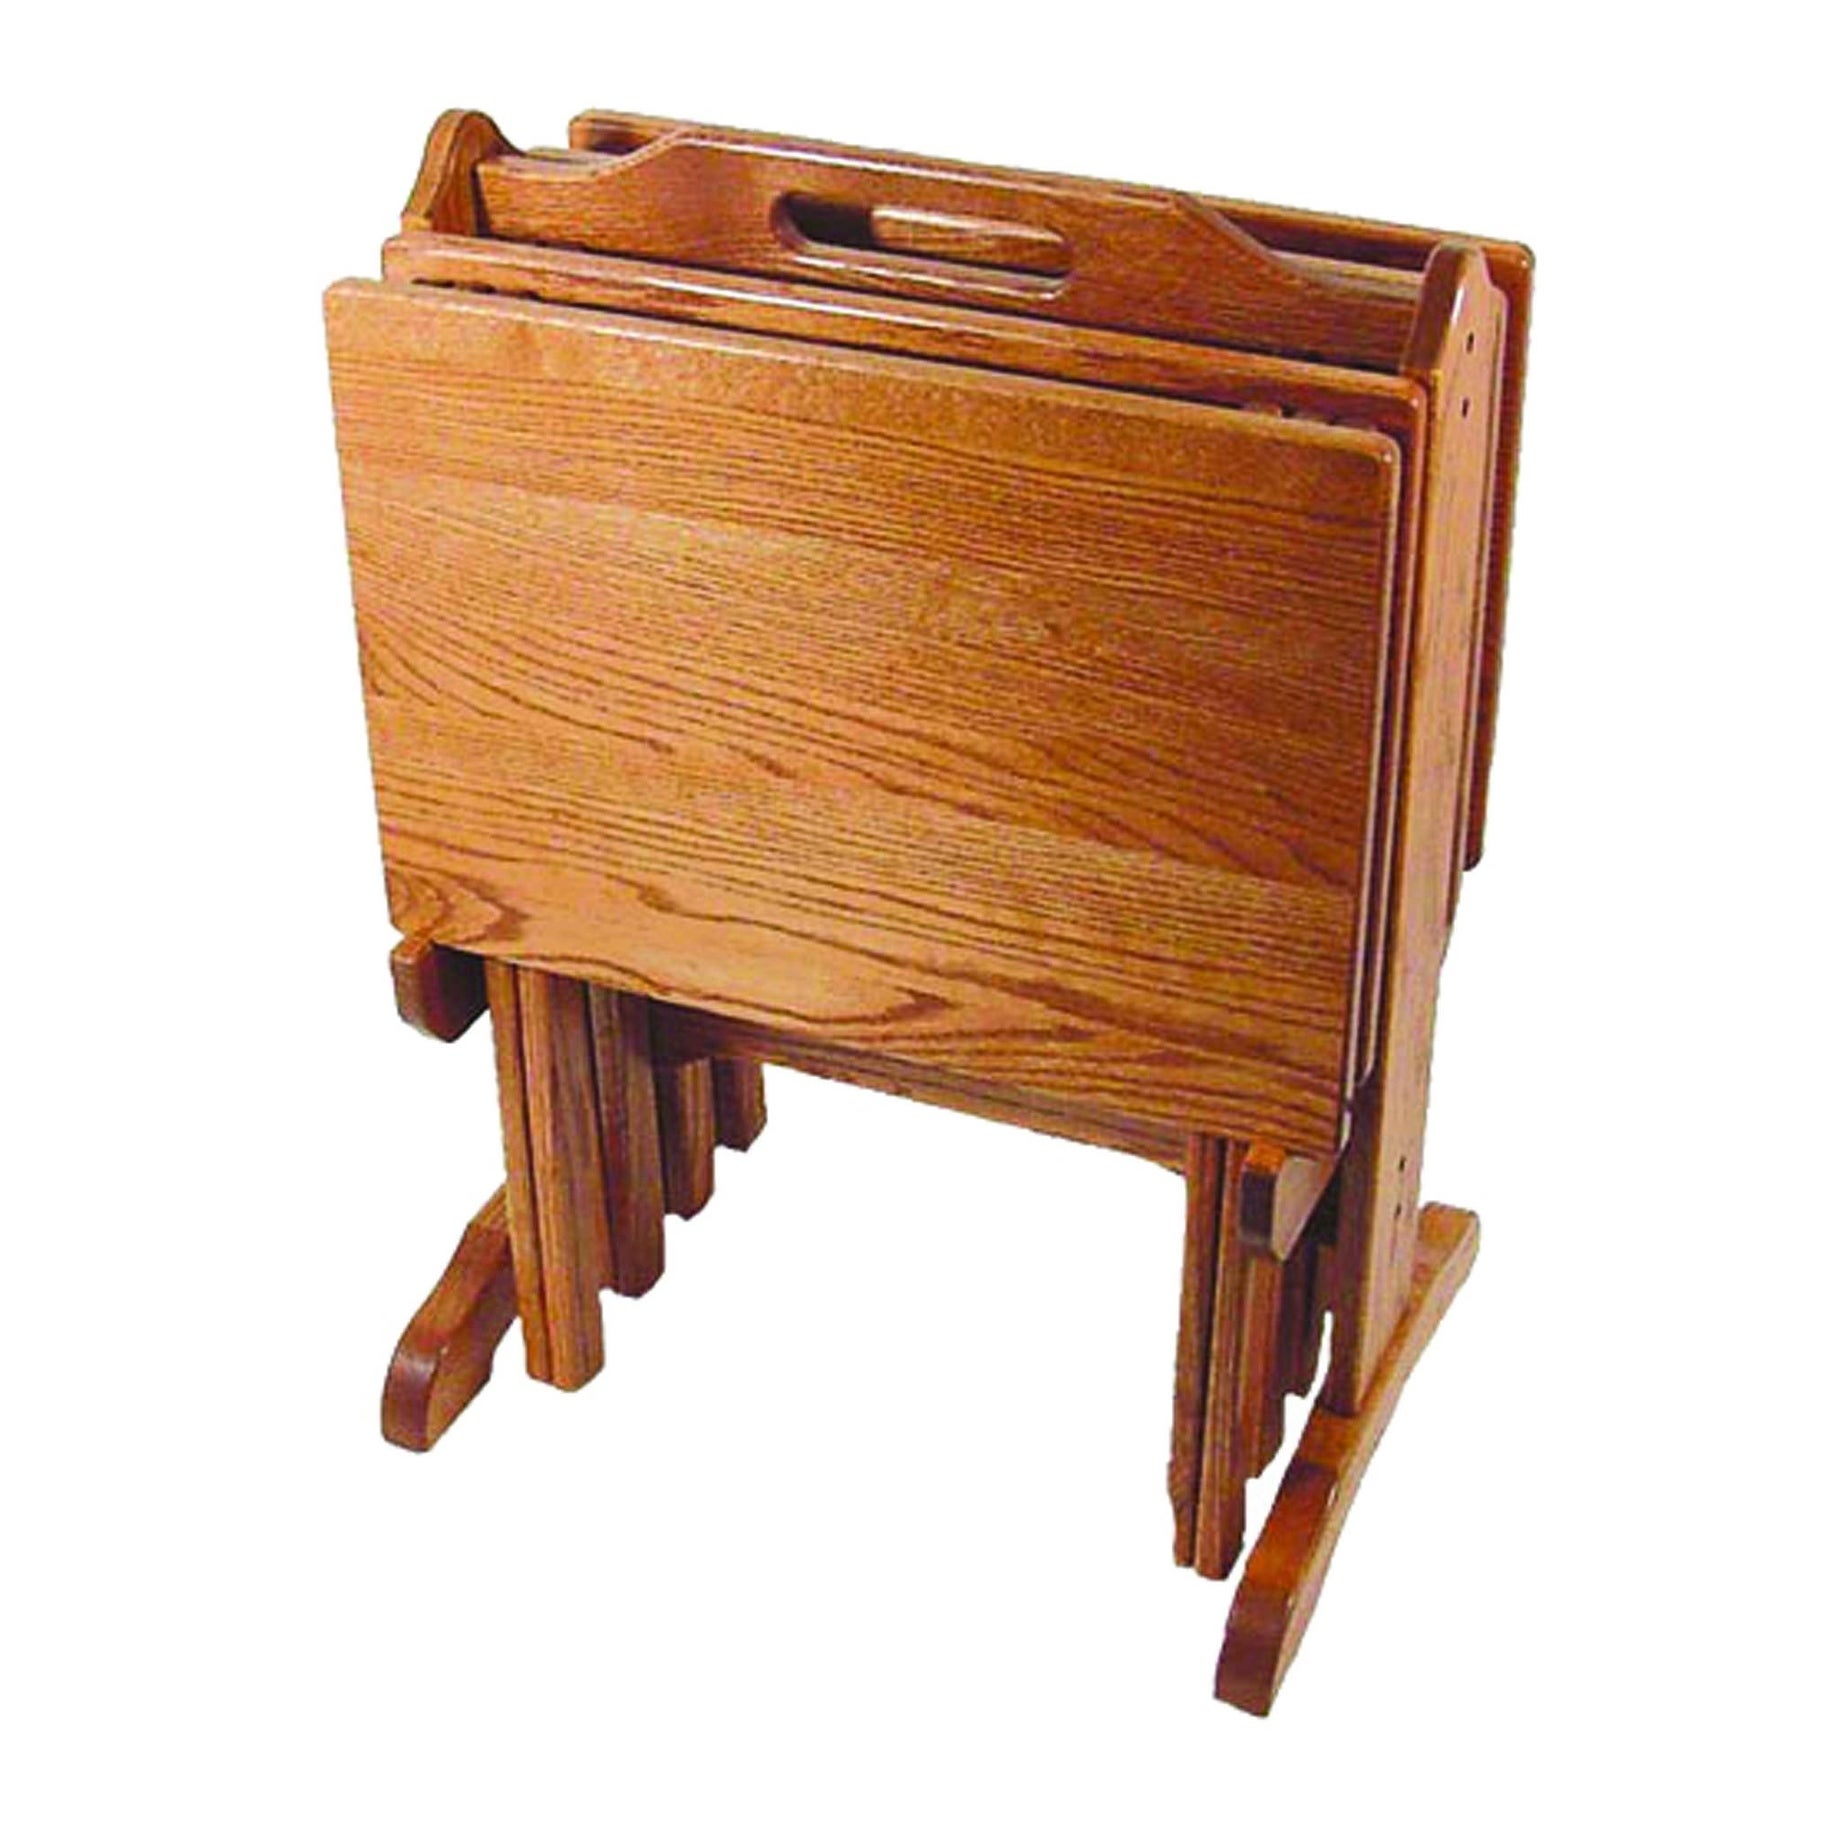 Oak Folding Tv Tray Set With Storage Stand On Sale Overstock 25363890 Seely